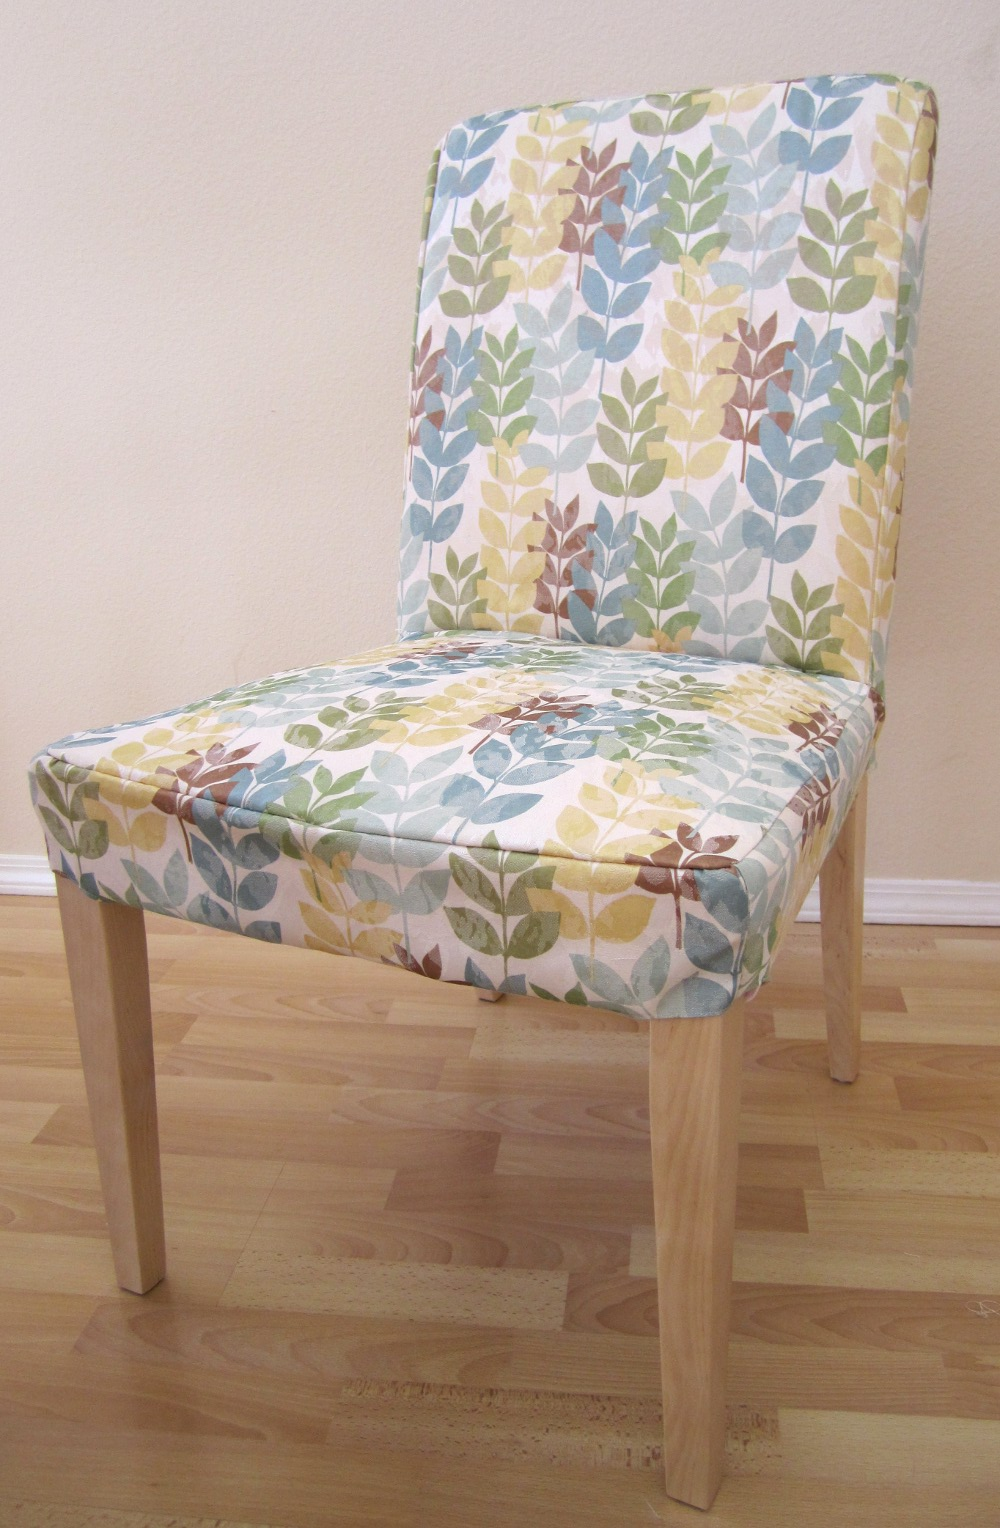 Creative Tradition Custom Cover for an Ikea Henriksdal chair